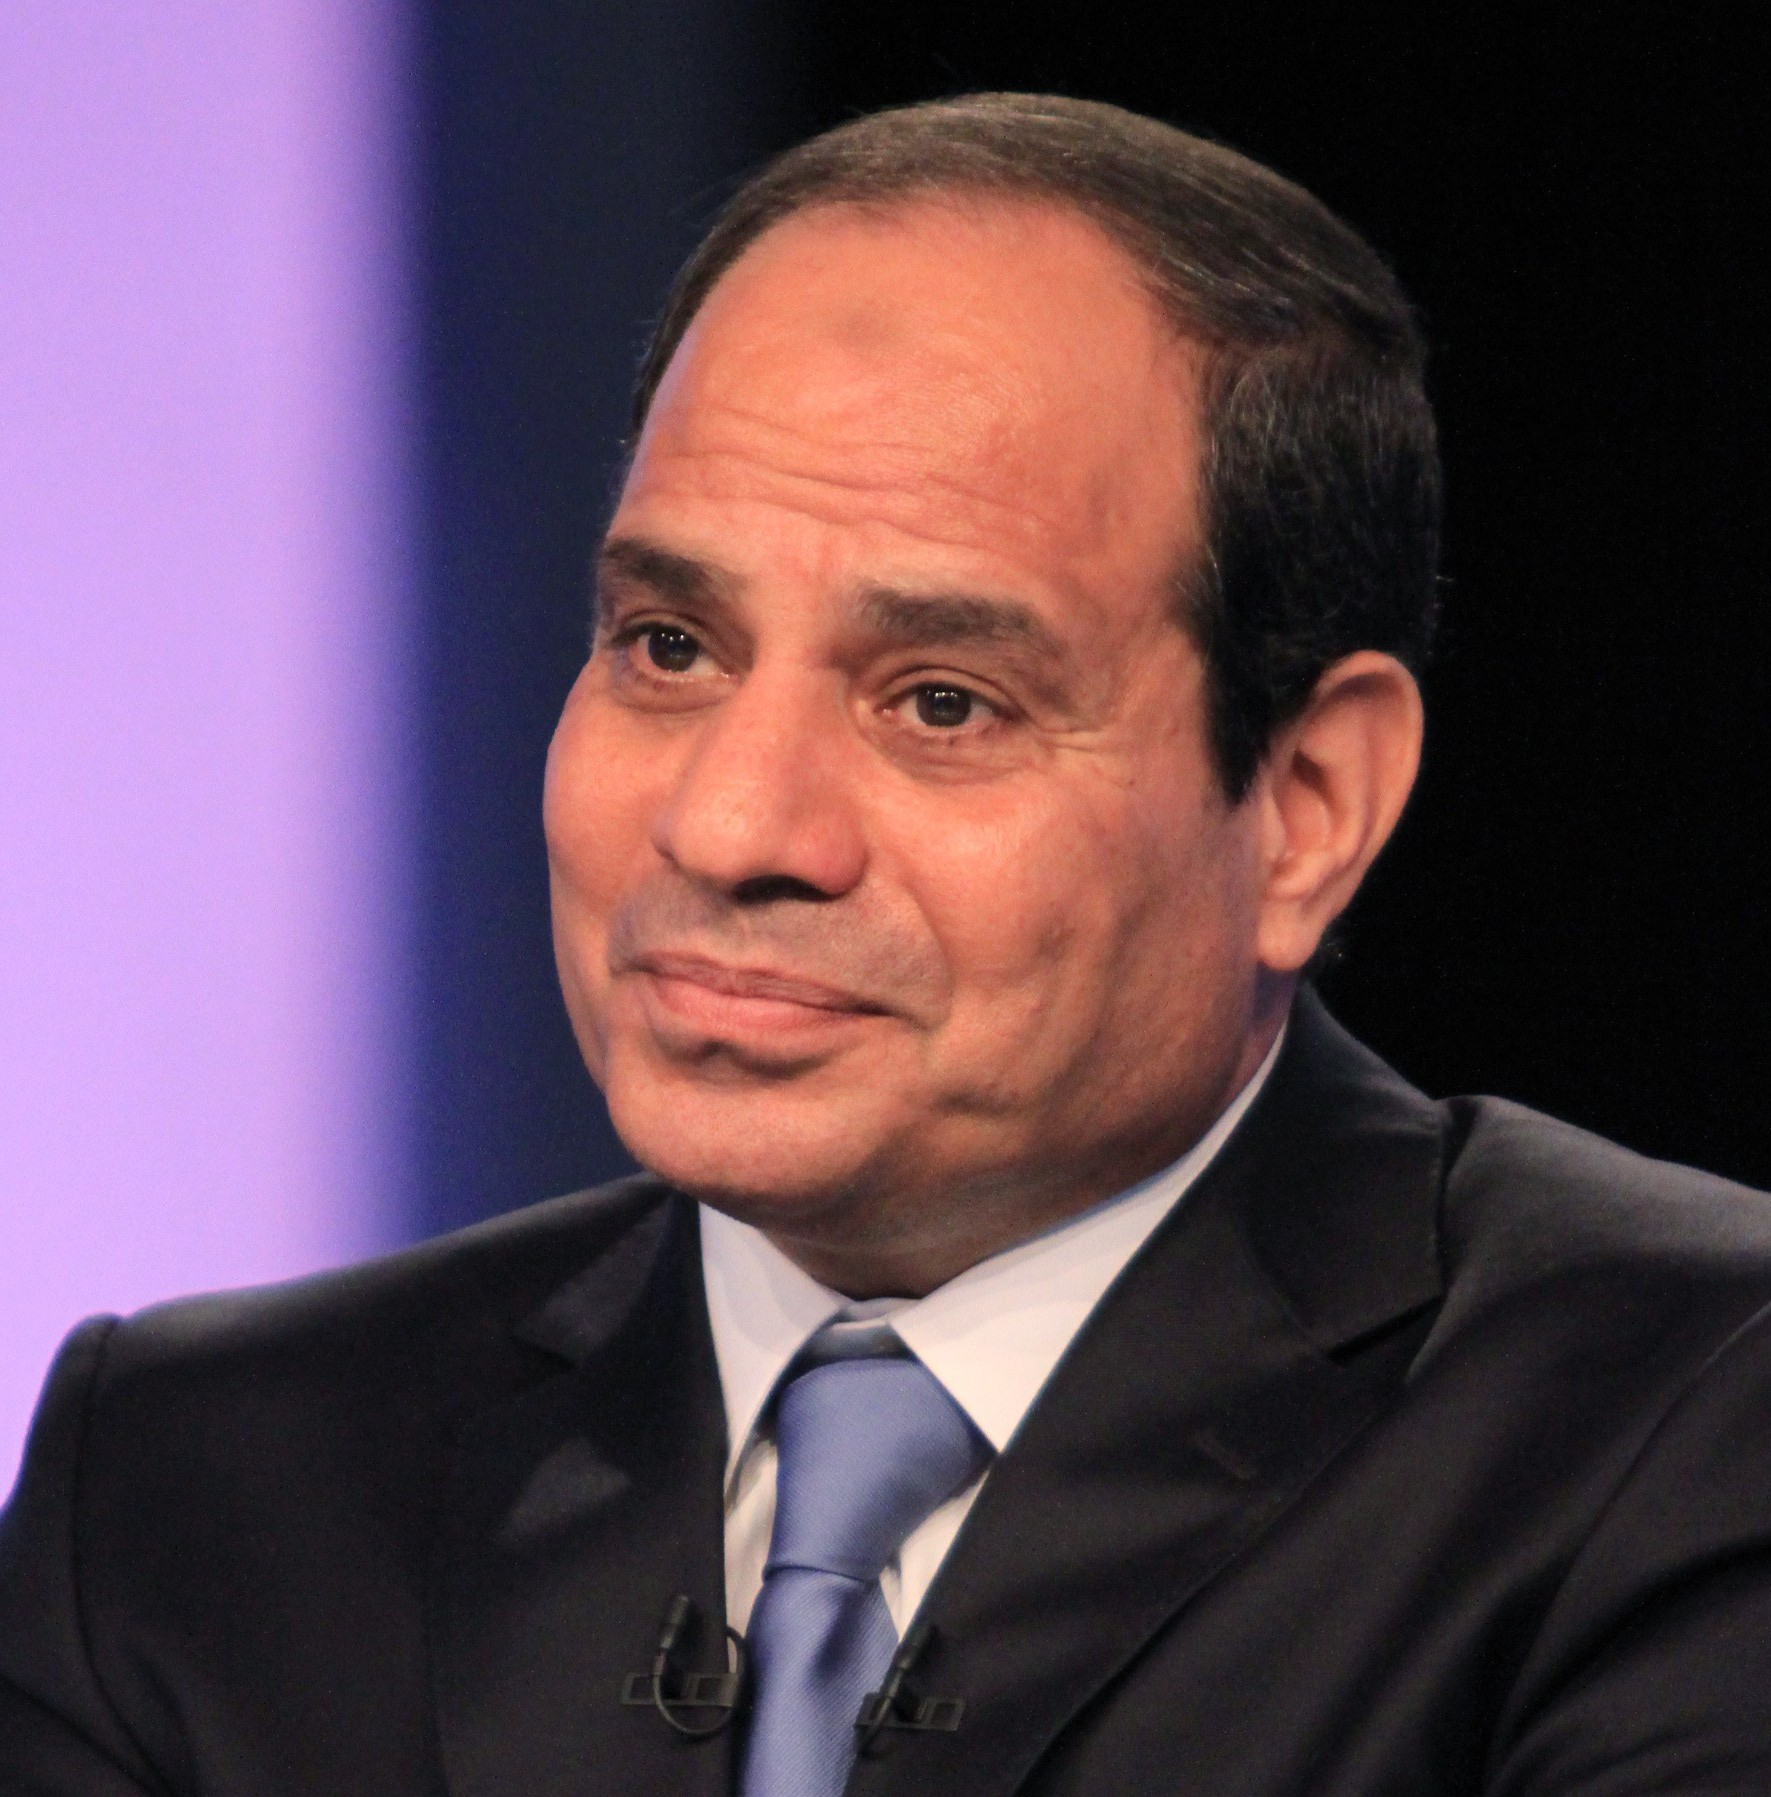 Former Defence Minsiter Abdel Fattah Al-Sisi was interviewed on television for the first time after running for the presidential elections (AFP PHOTO/STR )